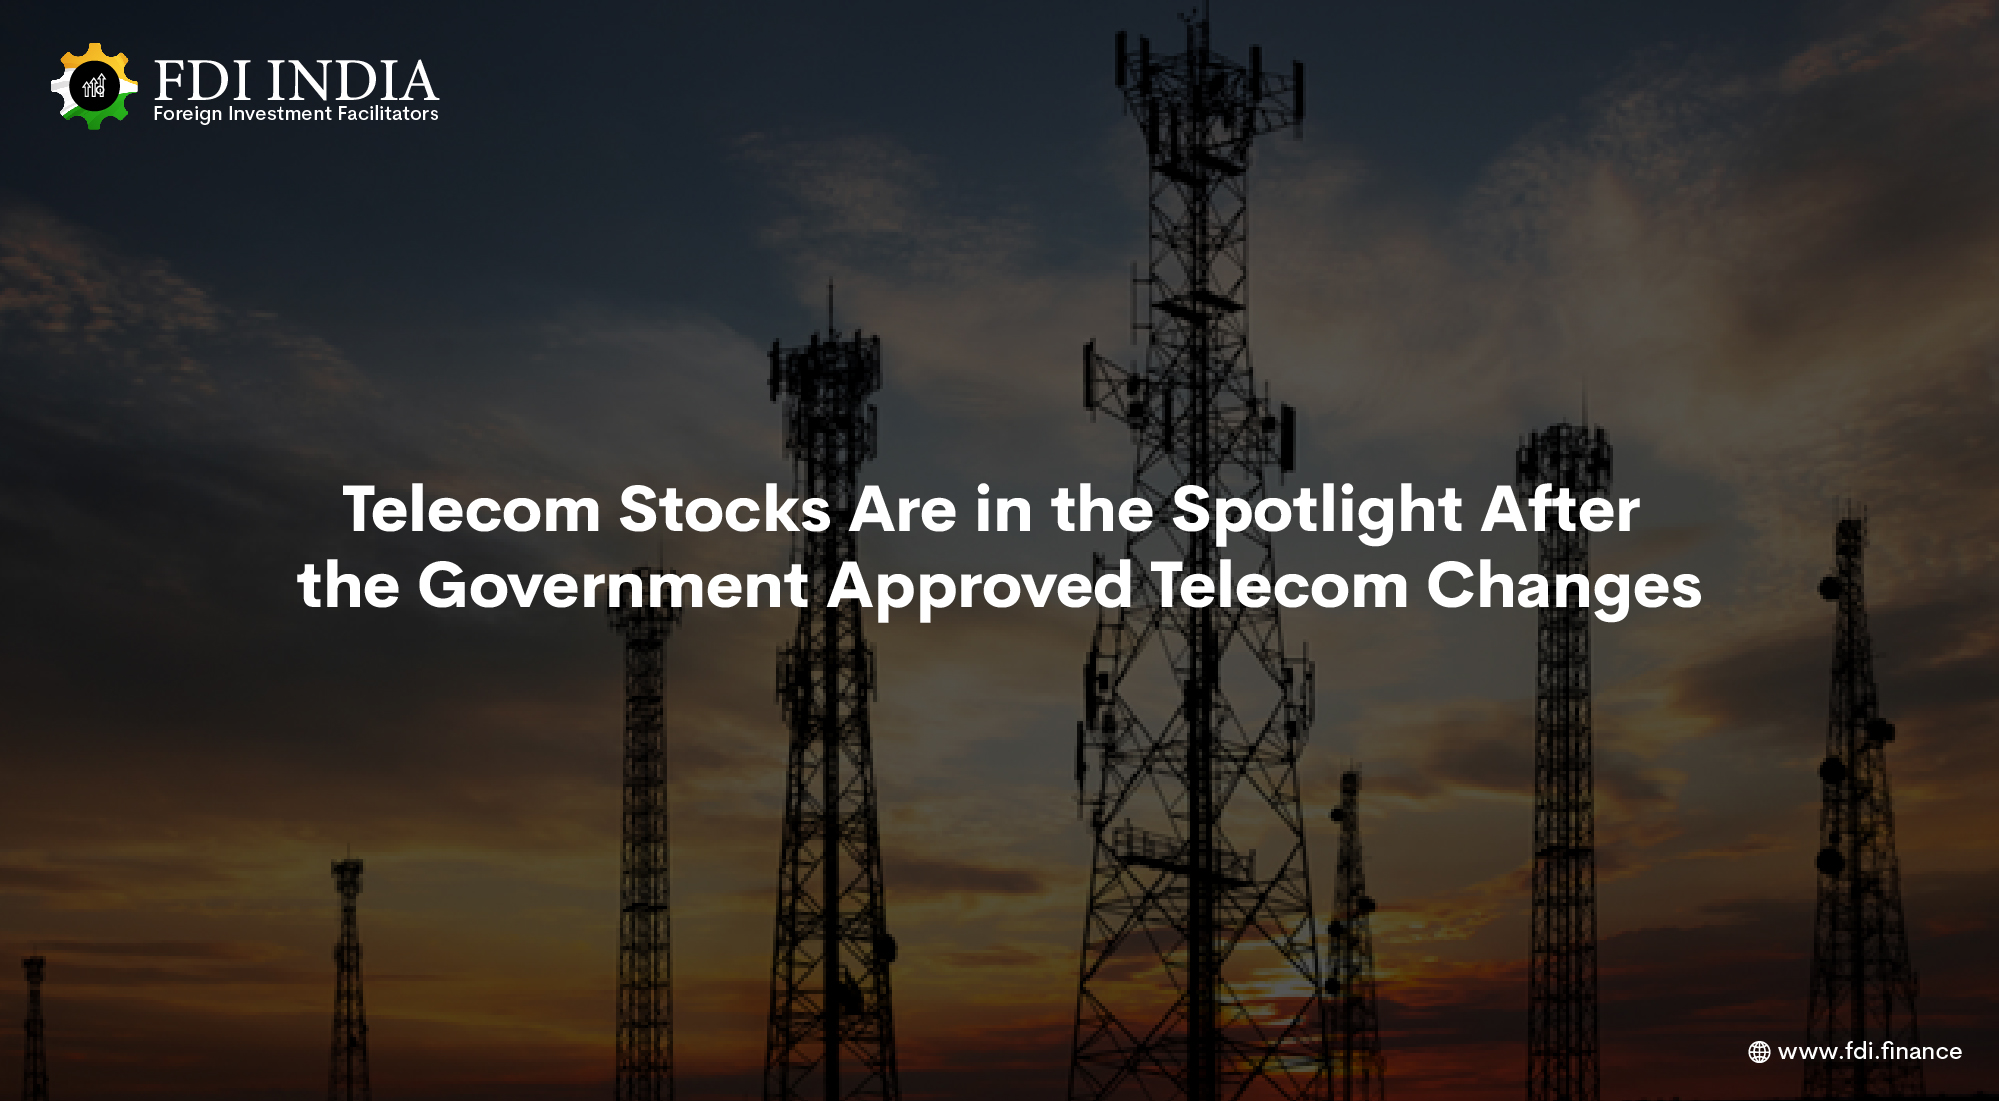 Telecom Stocks Are in the Spotlight After the Government Approved Telecom Changes